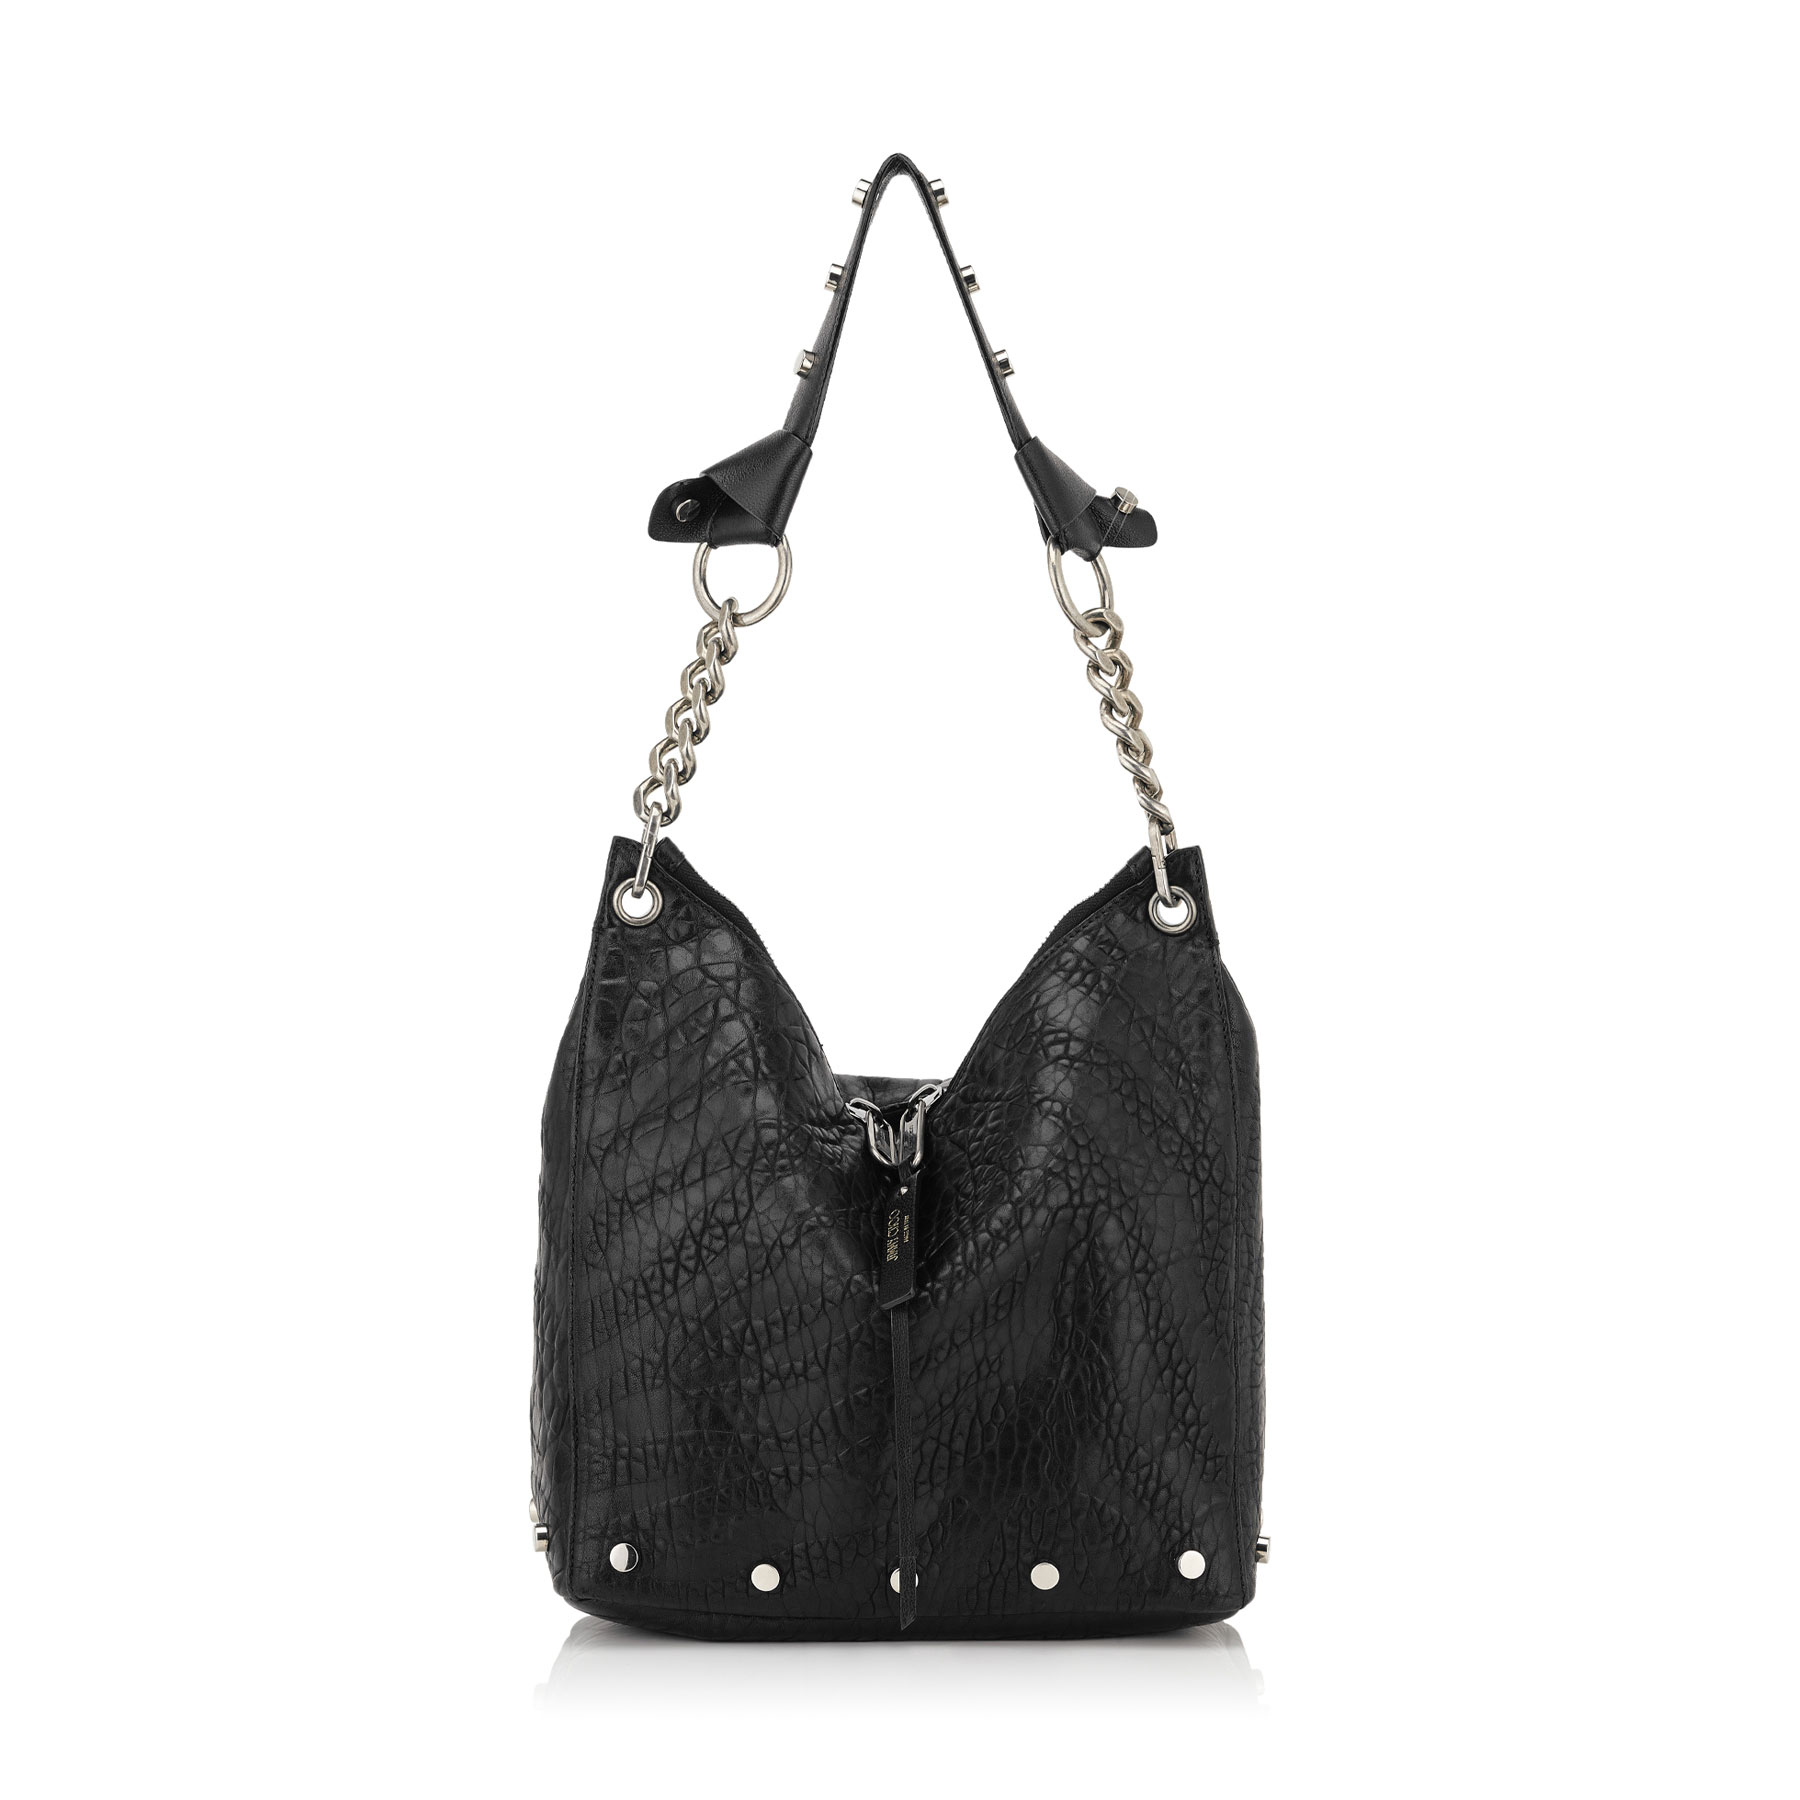 RAVEN/S Black Zebra Embossed Grainy Leather Small Shoulder Bag with Studs